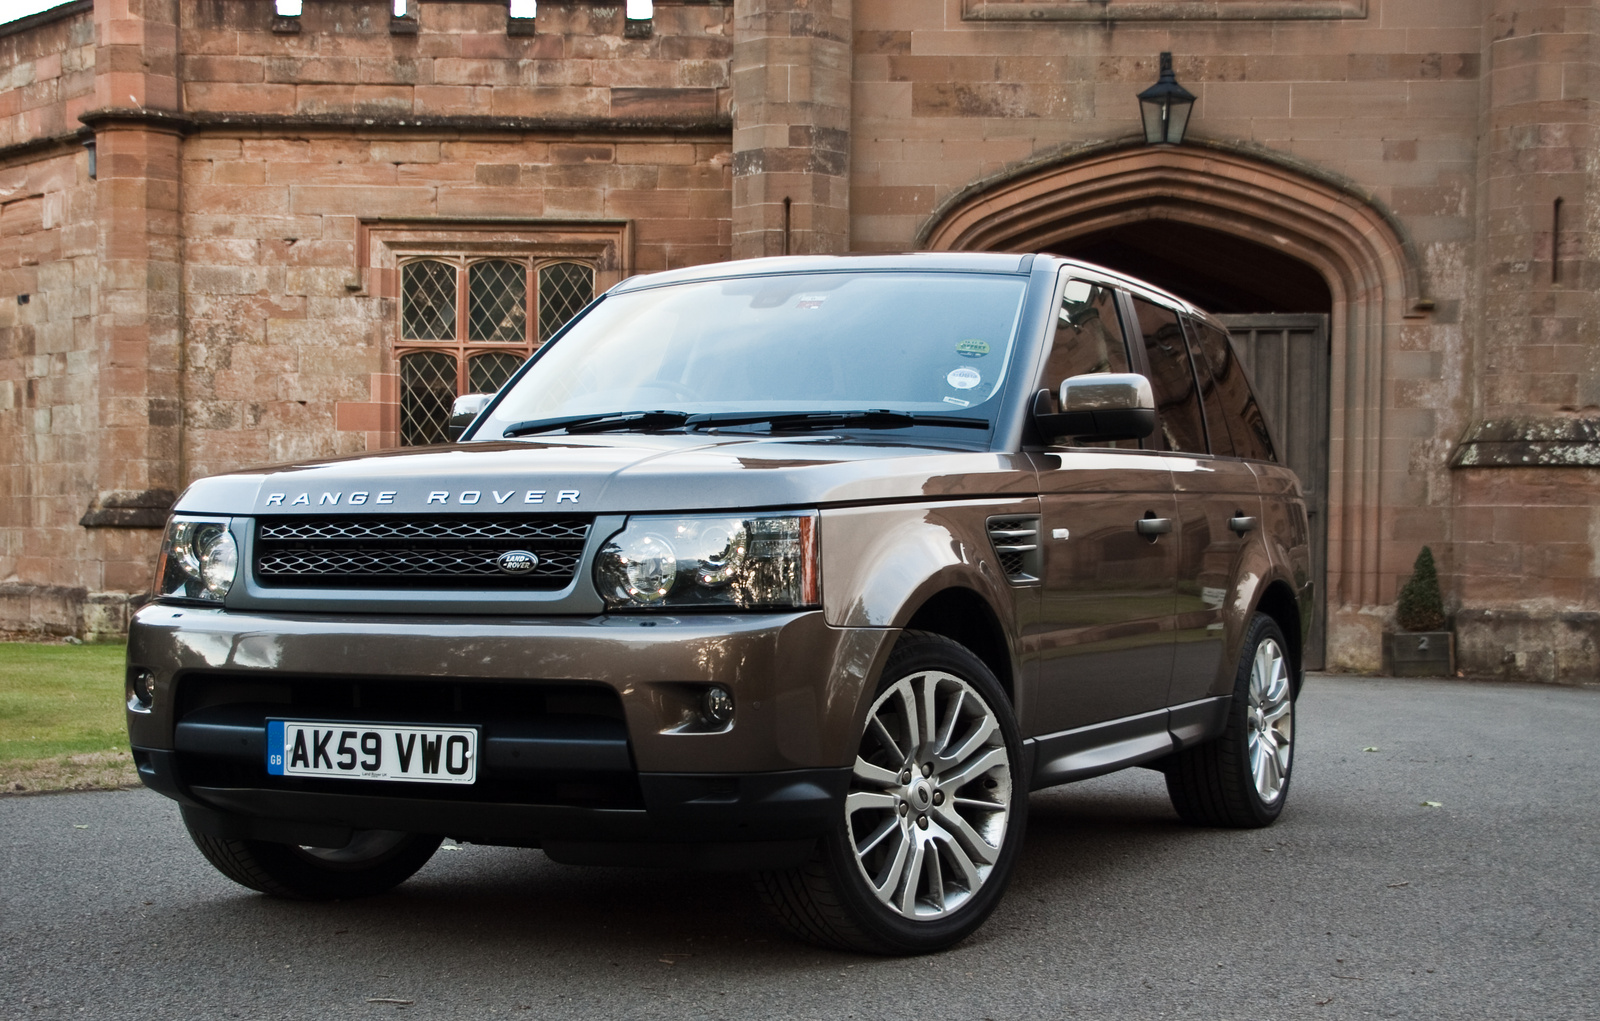 2010 land rover range rover sport pictures cargurus. Black Bedroom Furniture Sets. Home Design Ideas